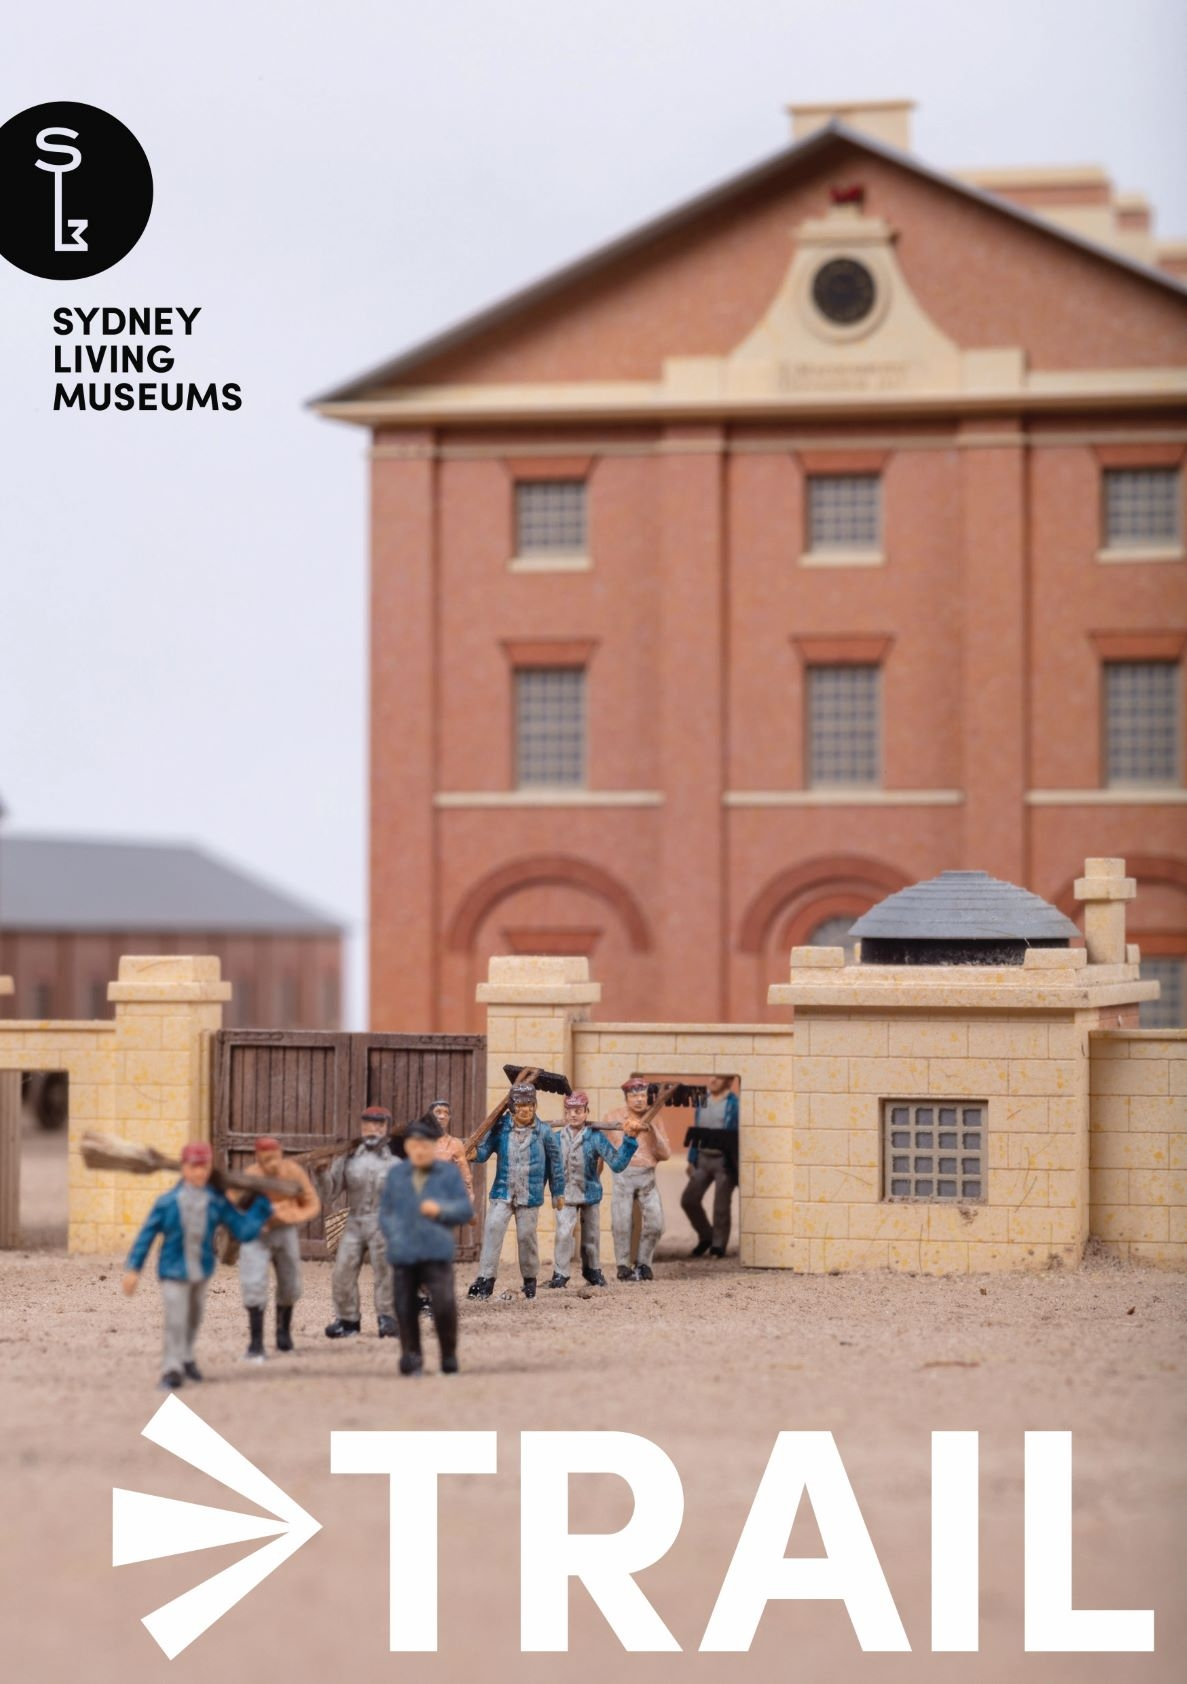 Cover of booklet showing brick barracks building.